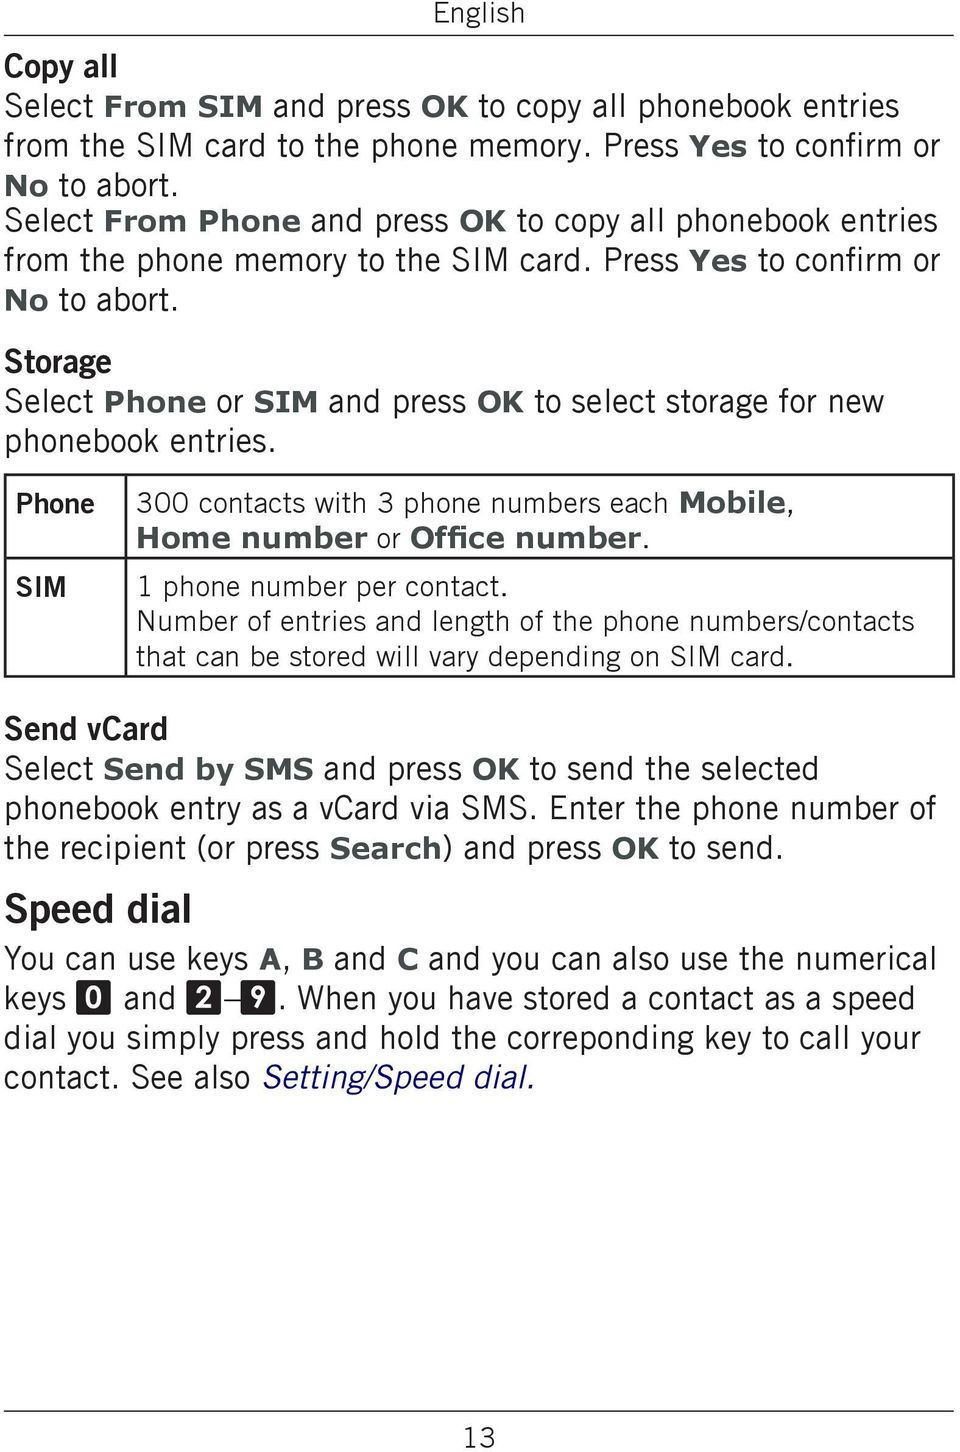 Storage Select Phone or SIM and press OK to select storage for new phonebook entries. Phone SIM 300 contacts with 3 phone numbers each Mobile, Home number or Office number. 1 phone number per contact.